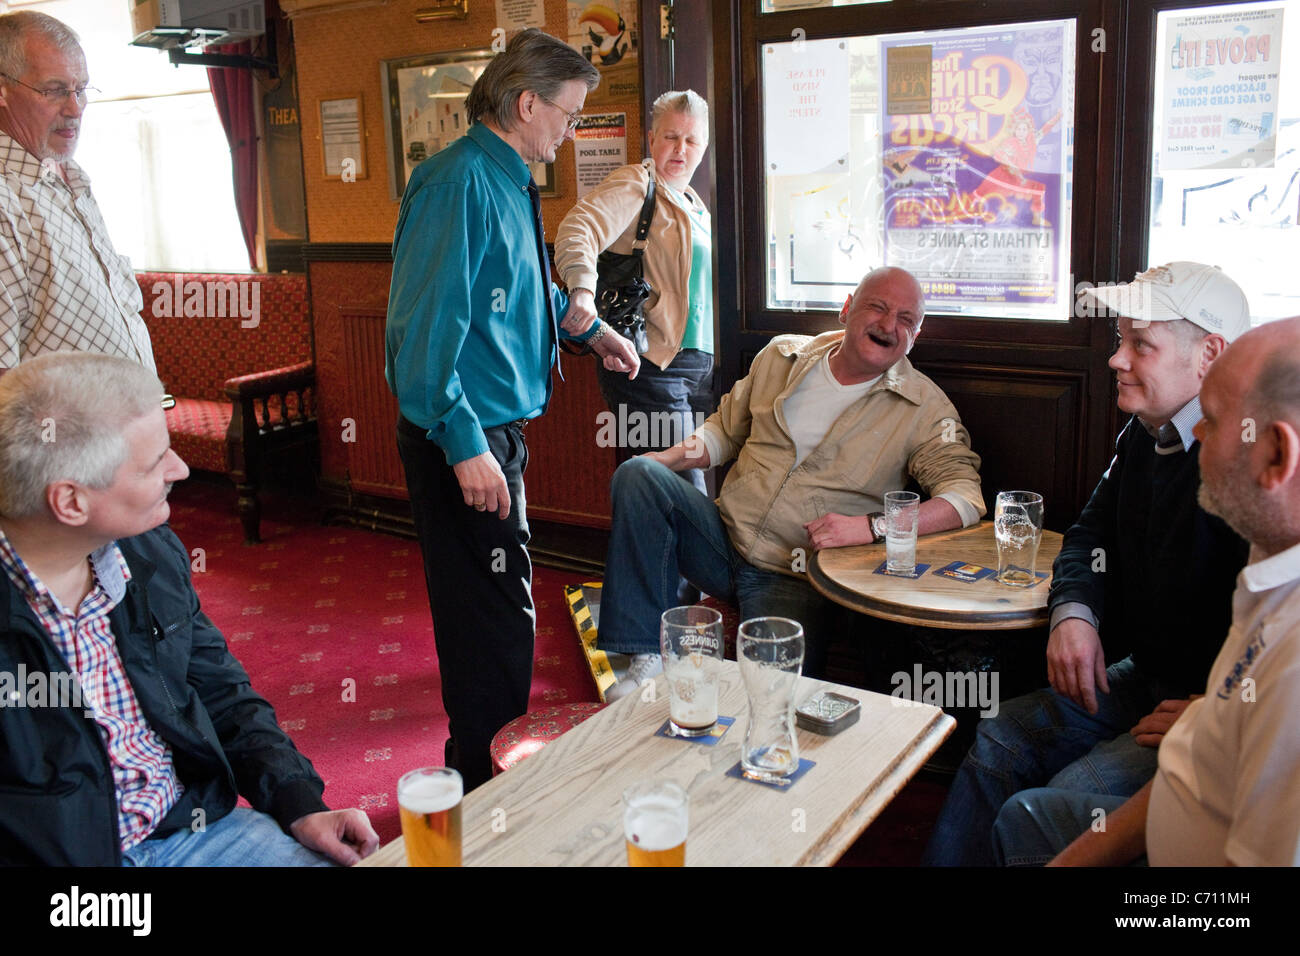 A group of people in a local pub on a Sunday afternoon in Blackpool, England. - Stock Image